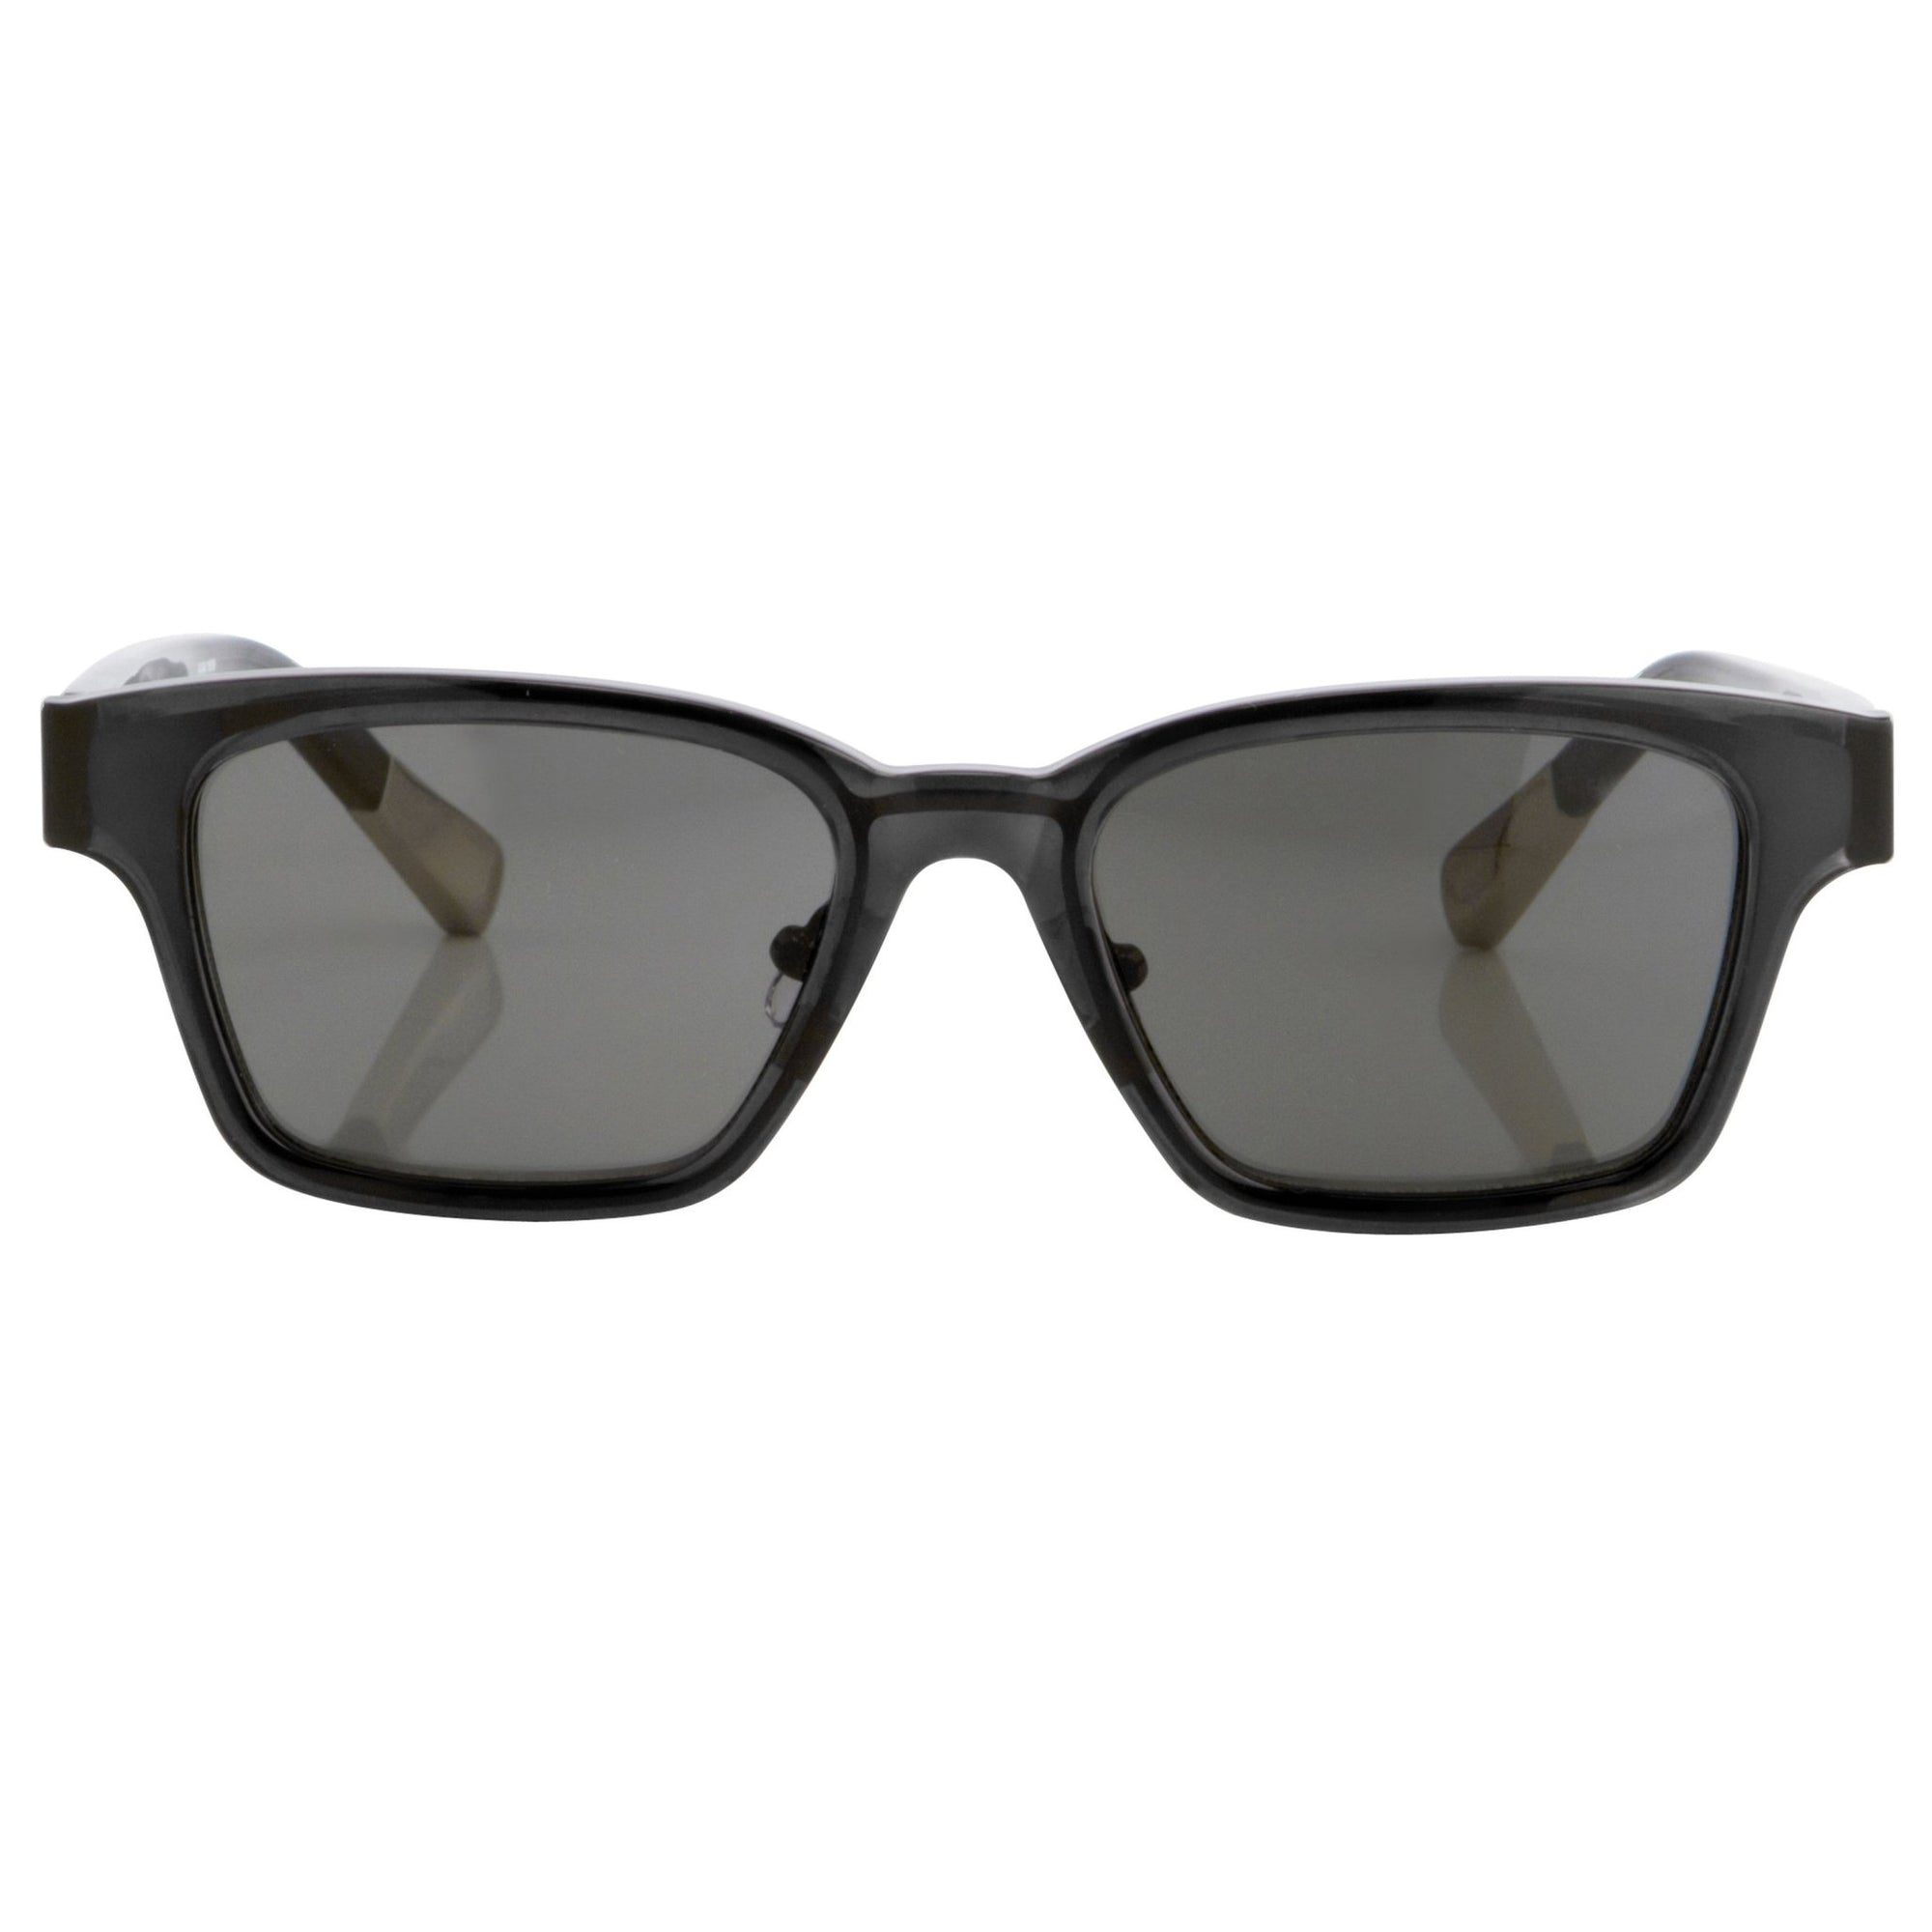 Kris Van Assche Sunglasses with Rectangular Translucent Black Metal and Grey Lenses Category 3 - KVA18C9SUN - Watches & Crystals